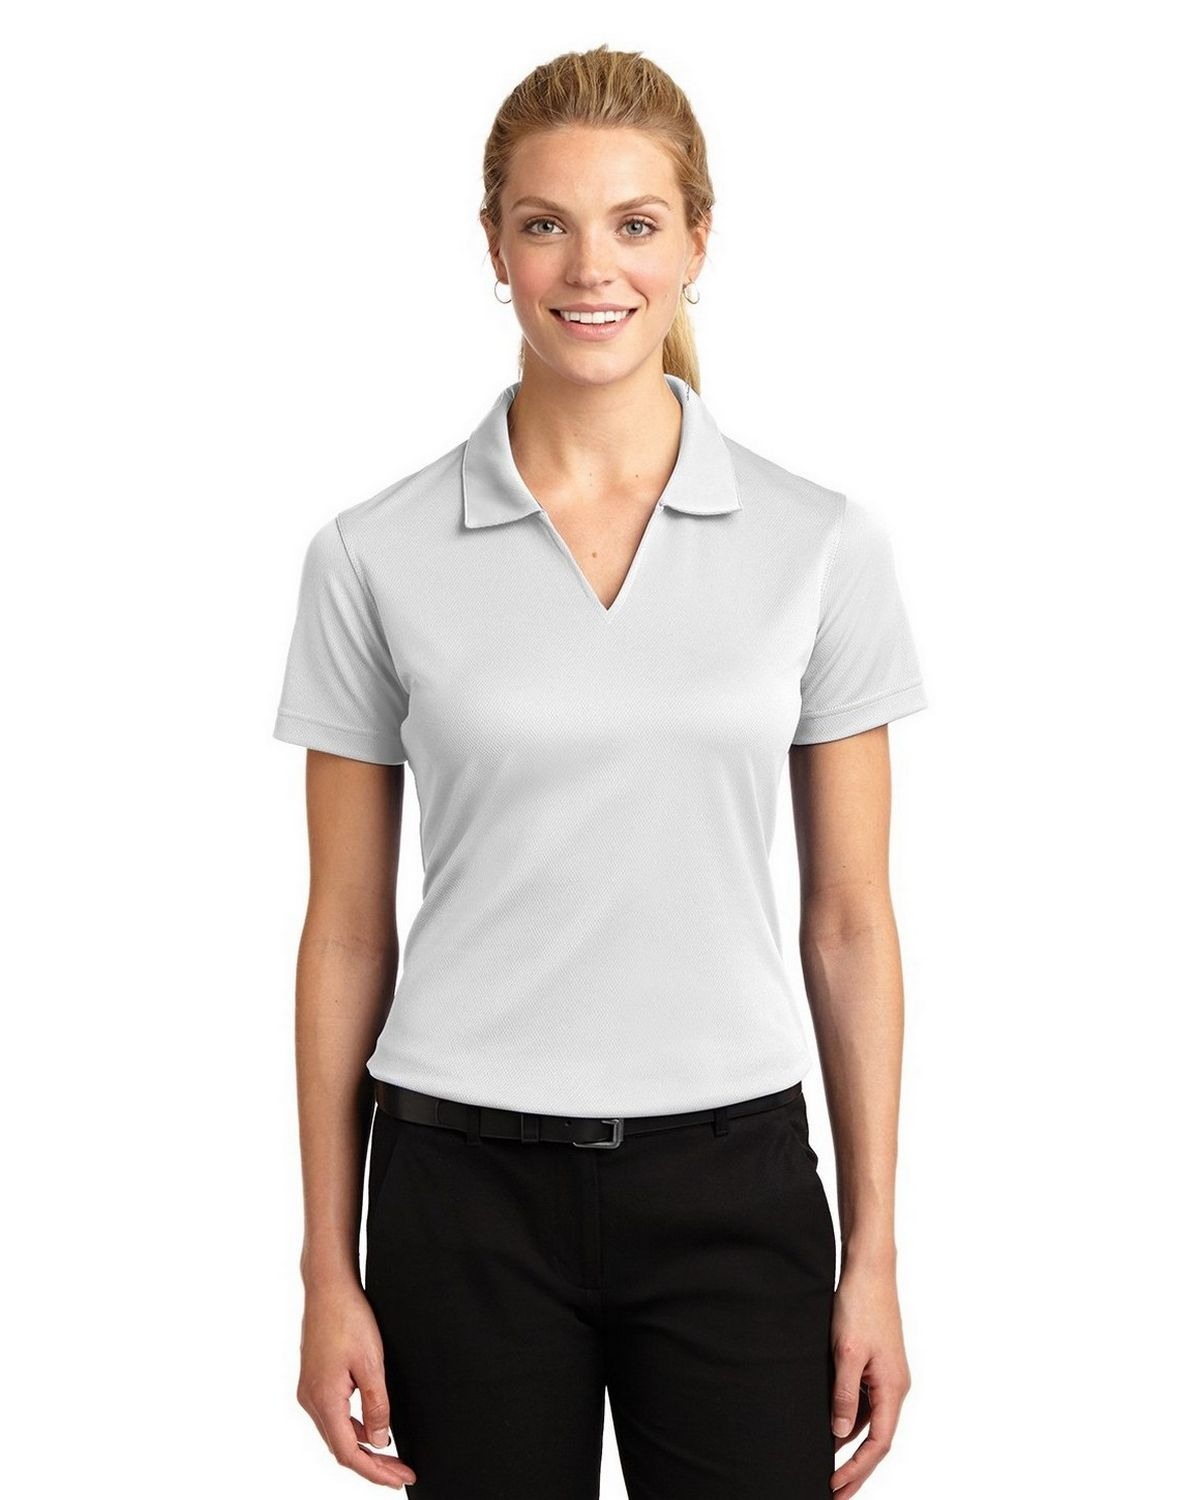 e37a399244c80 Sport-Tek L469 Ladies Dri-Mesh V-Neck Polo by Port Authority ...